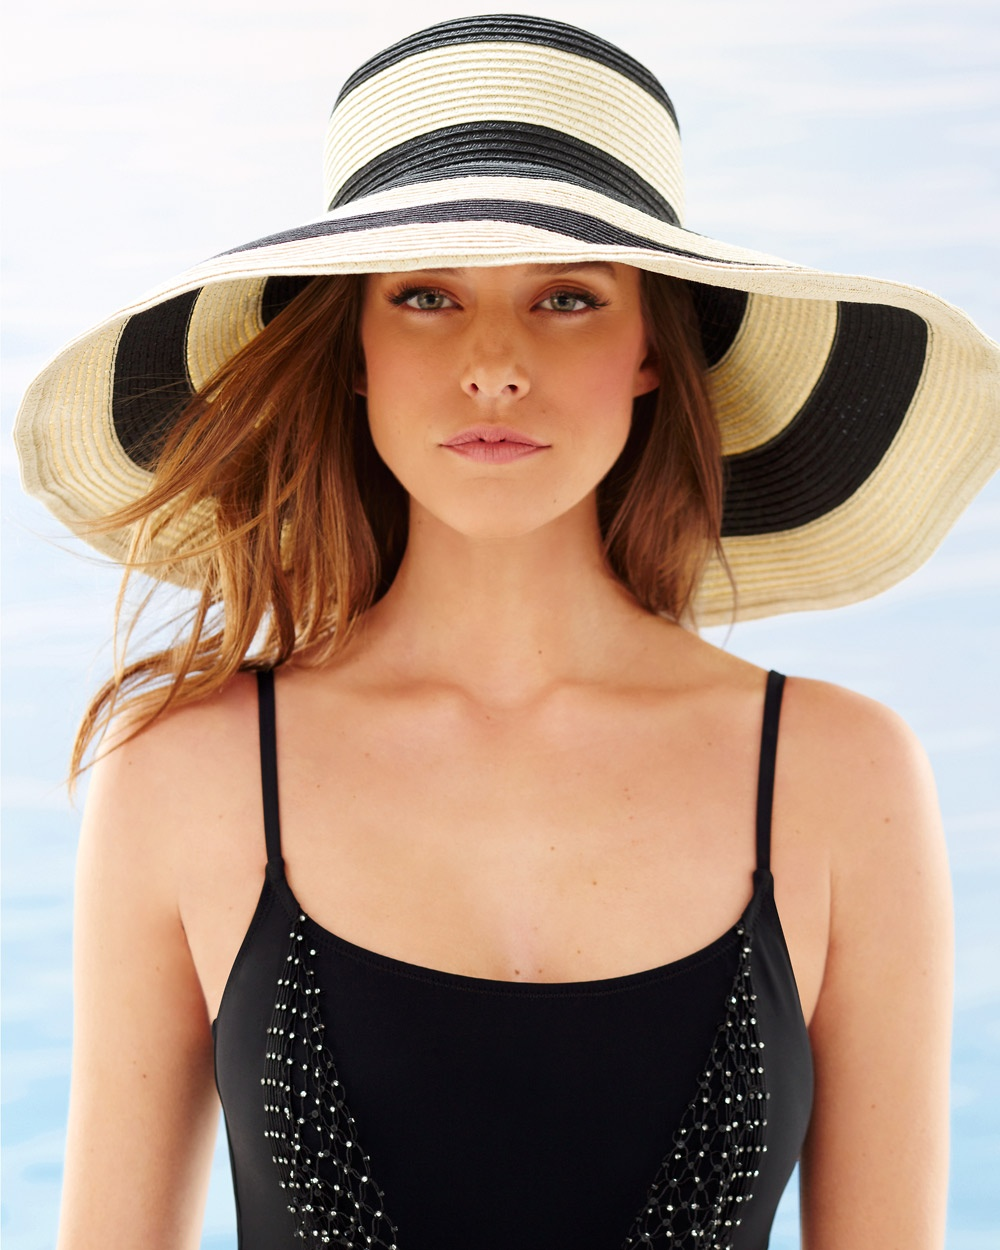 Striped-Straw-Hats5 10 Women's Hat Trends For Summer 2020